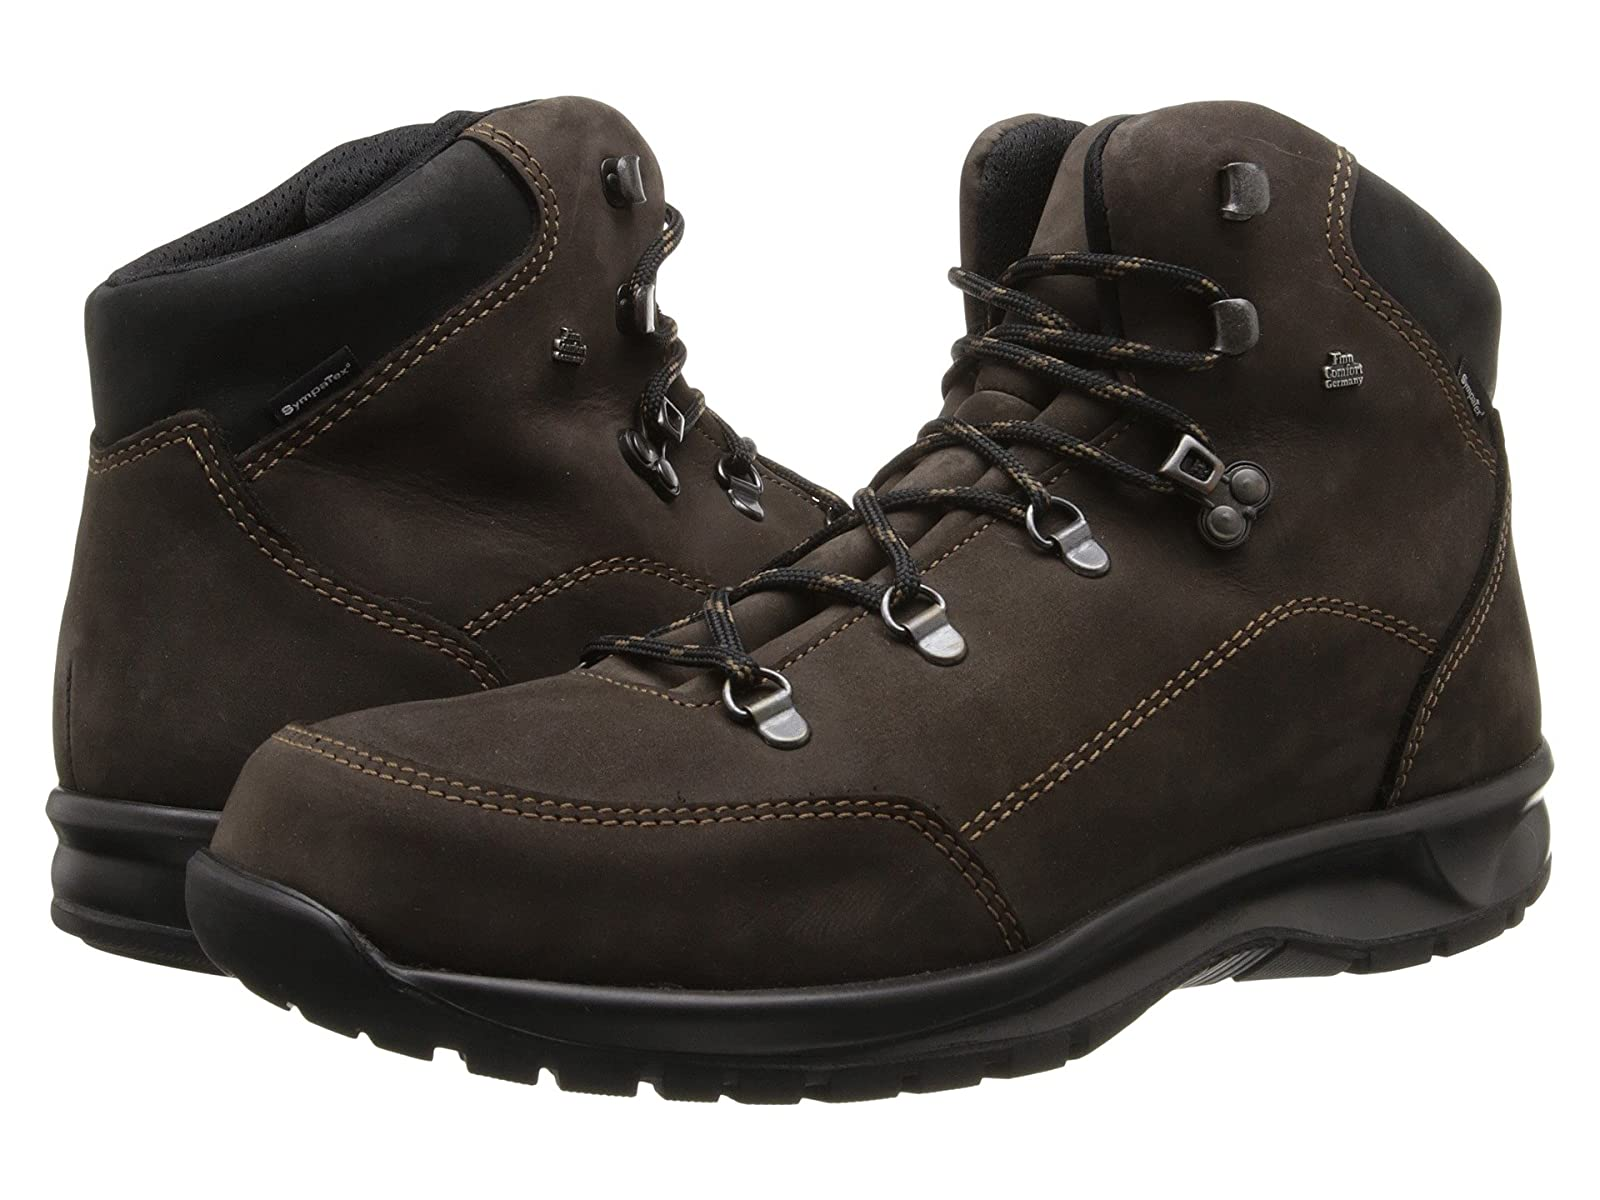 Finn Comfort Tibet - 3914Affordable and distinctive shoes